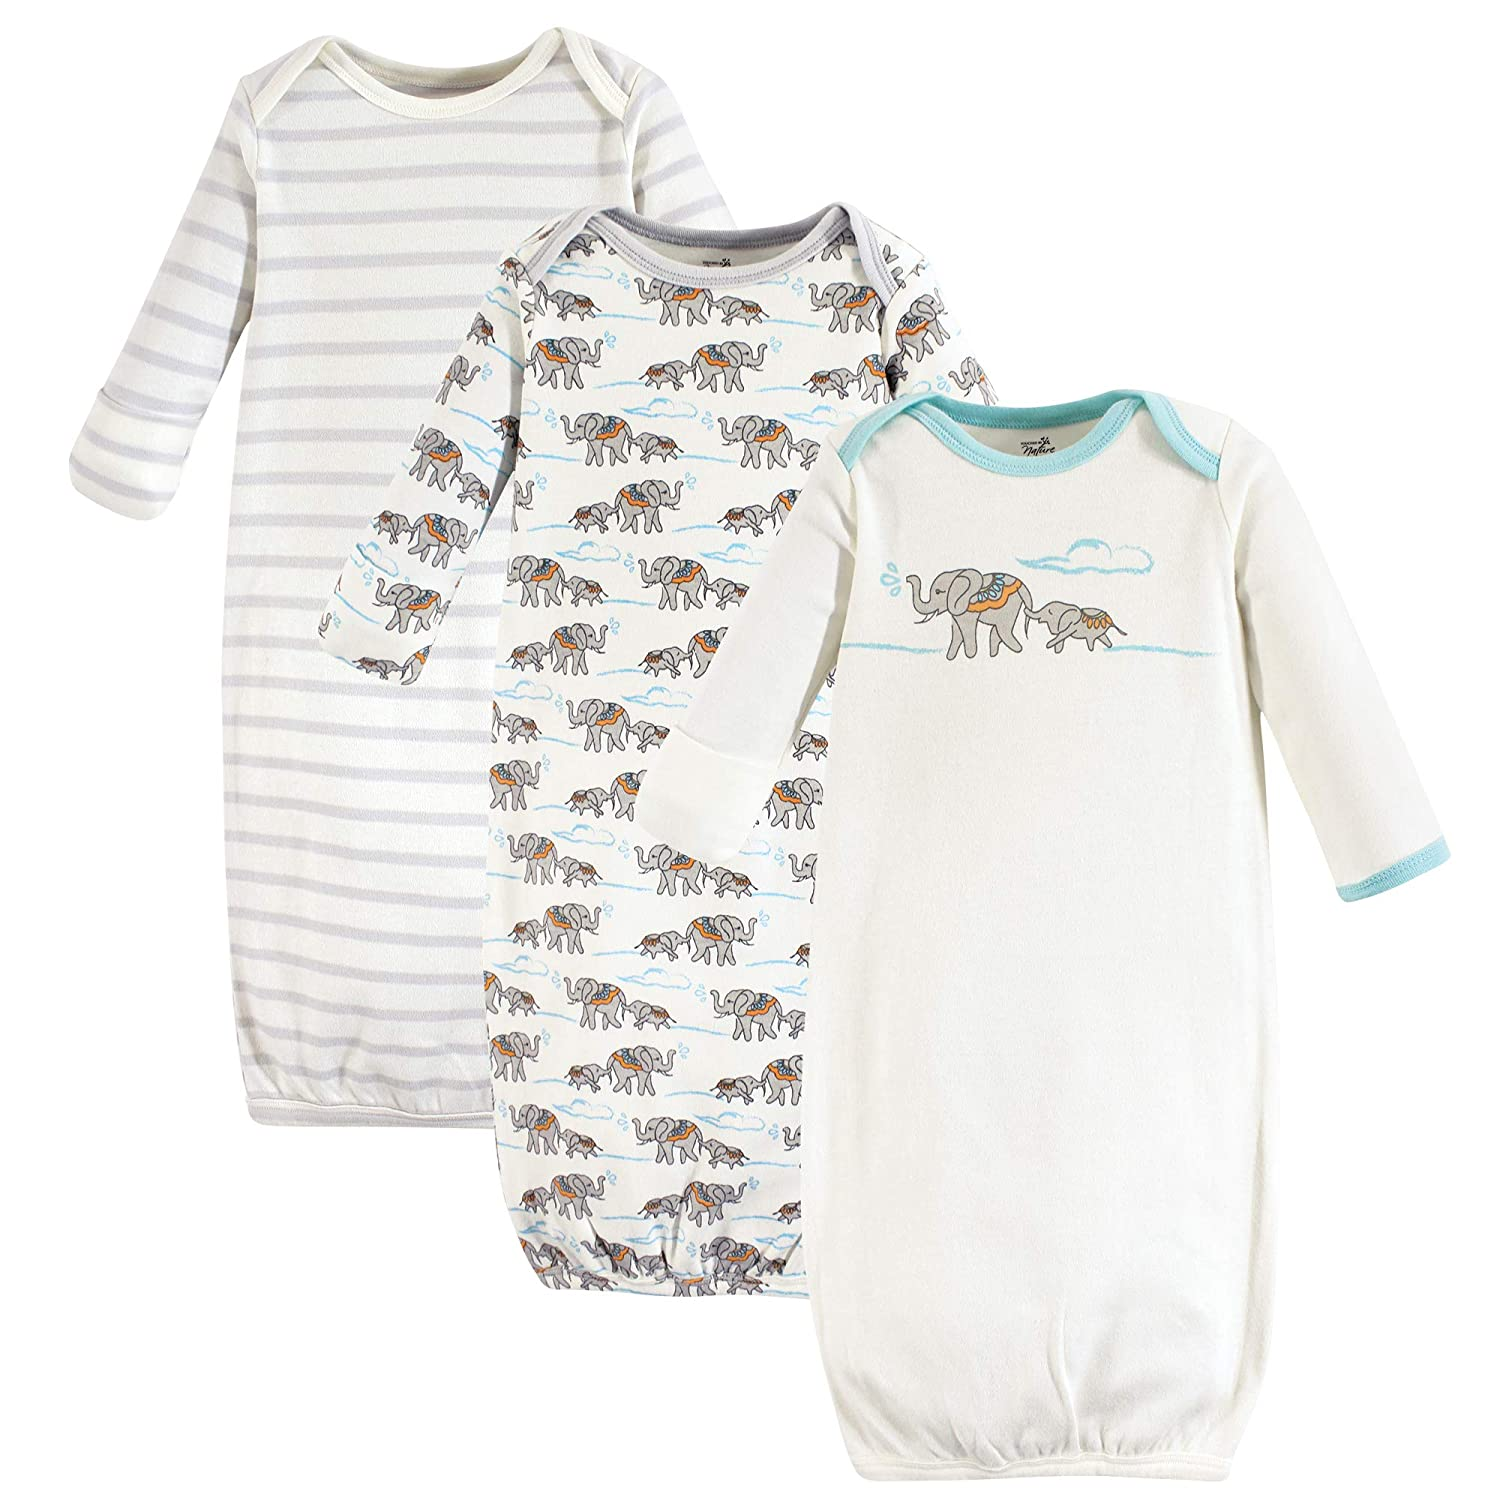 Touched by Nature Baby Organic Cotton Gown Elephant 0-6 Months